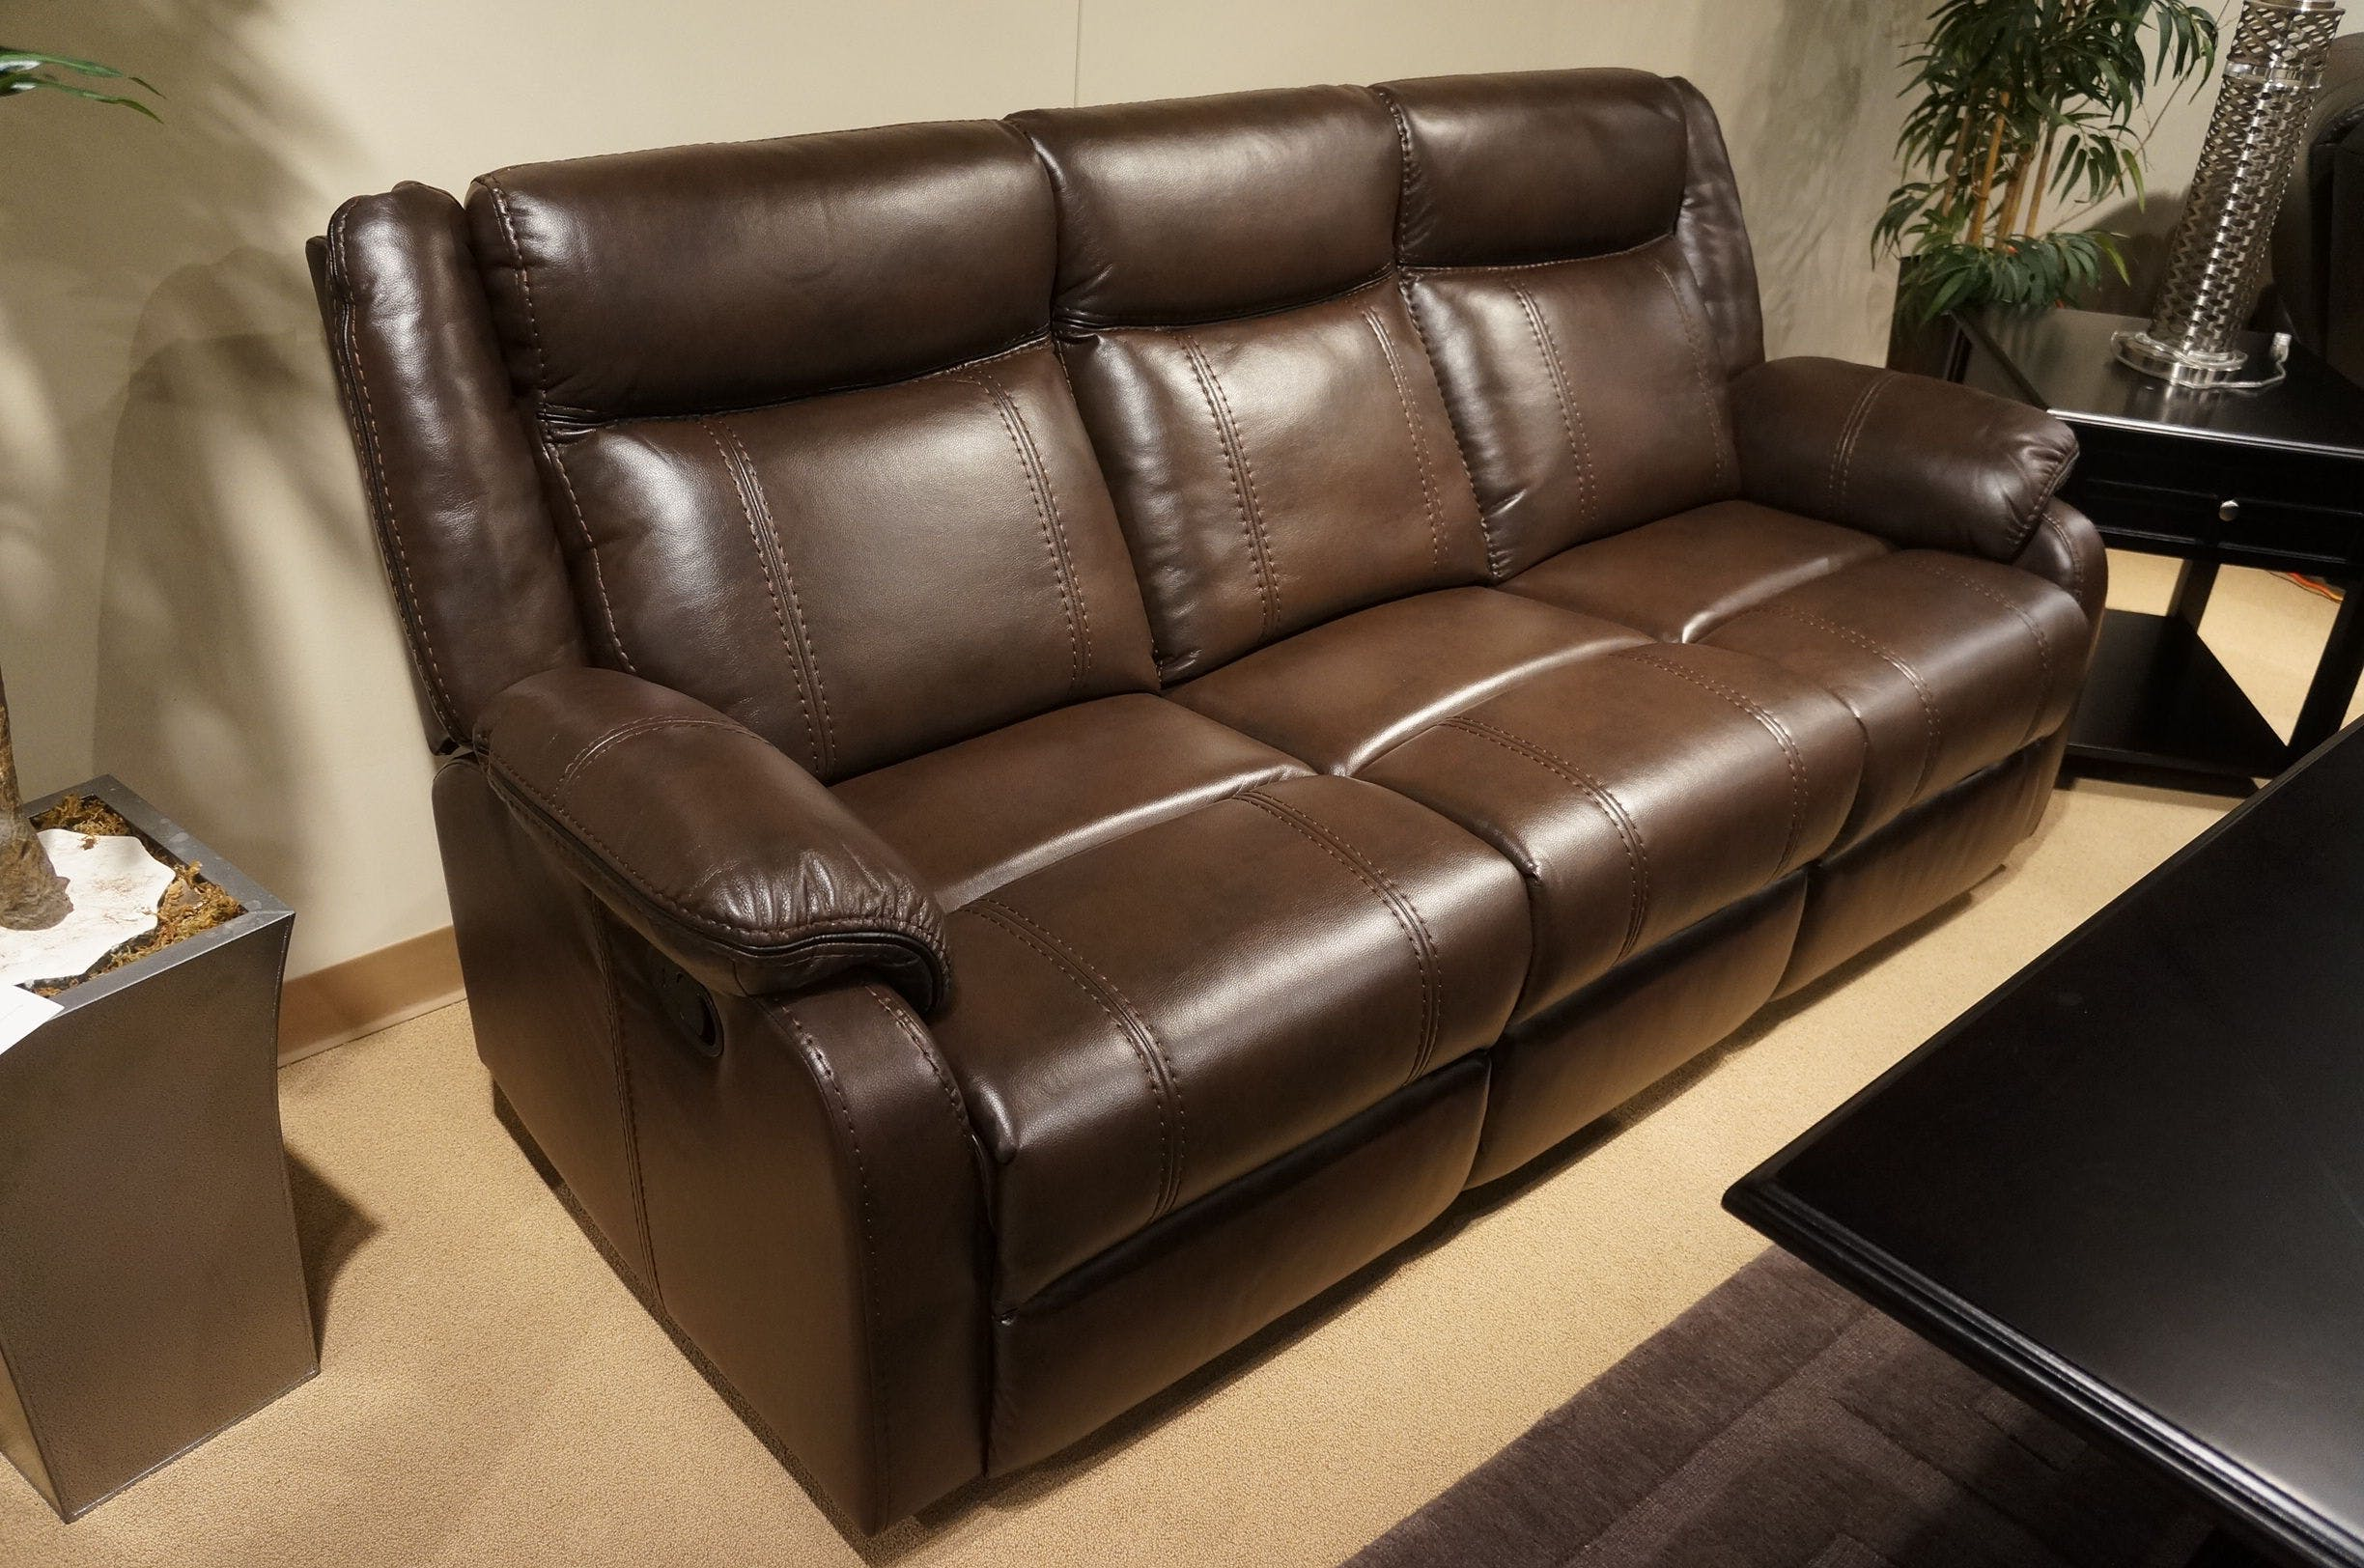 Picture of: Homelegance Living Room Double Reclining Sofa With Center Drop Down Cup Holders 8201brw 3